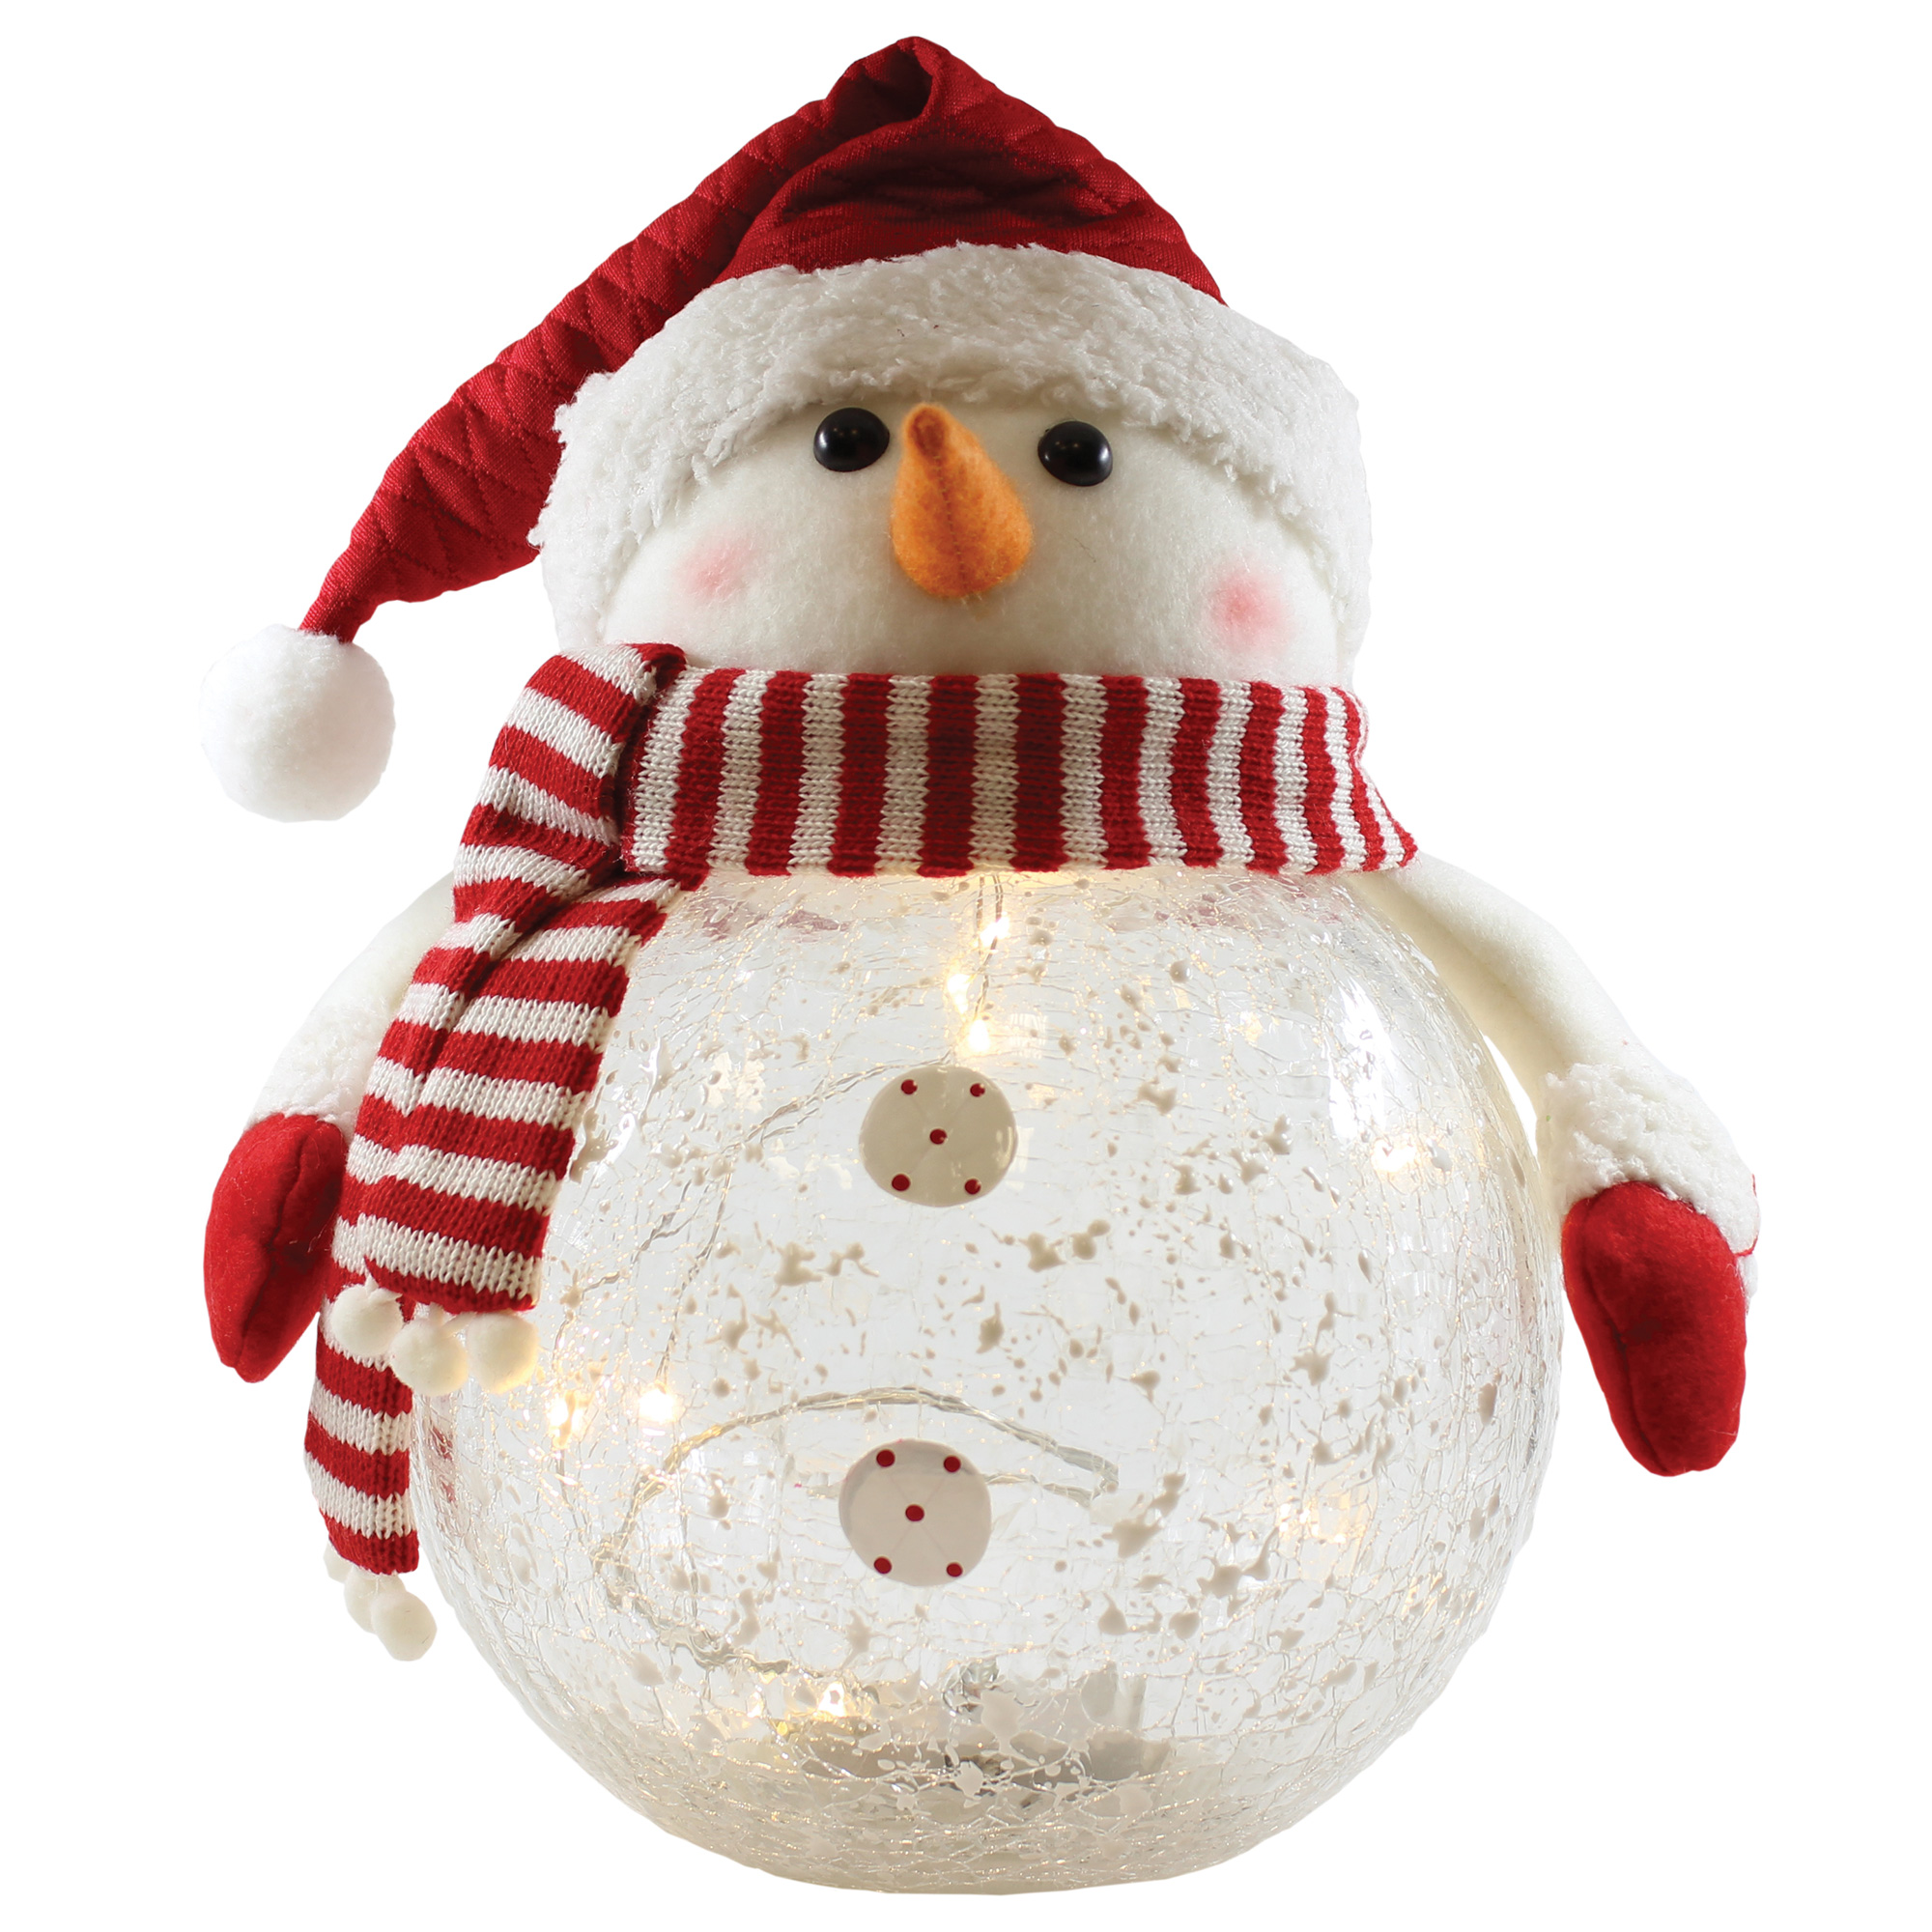 "9.5"" x 11"" x 7"" SNOWMAN WITH SCARF PLUSH"